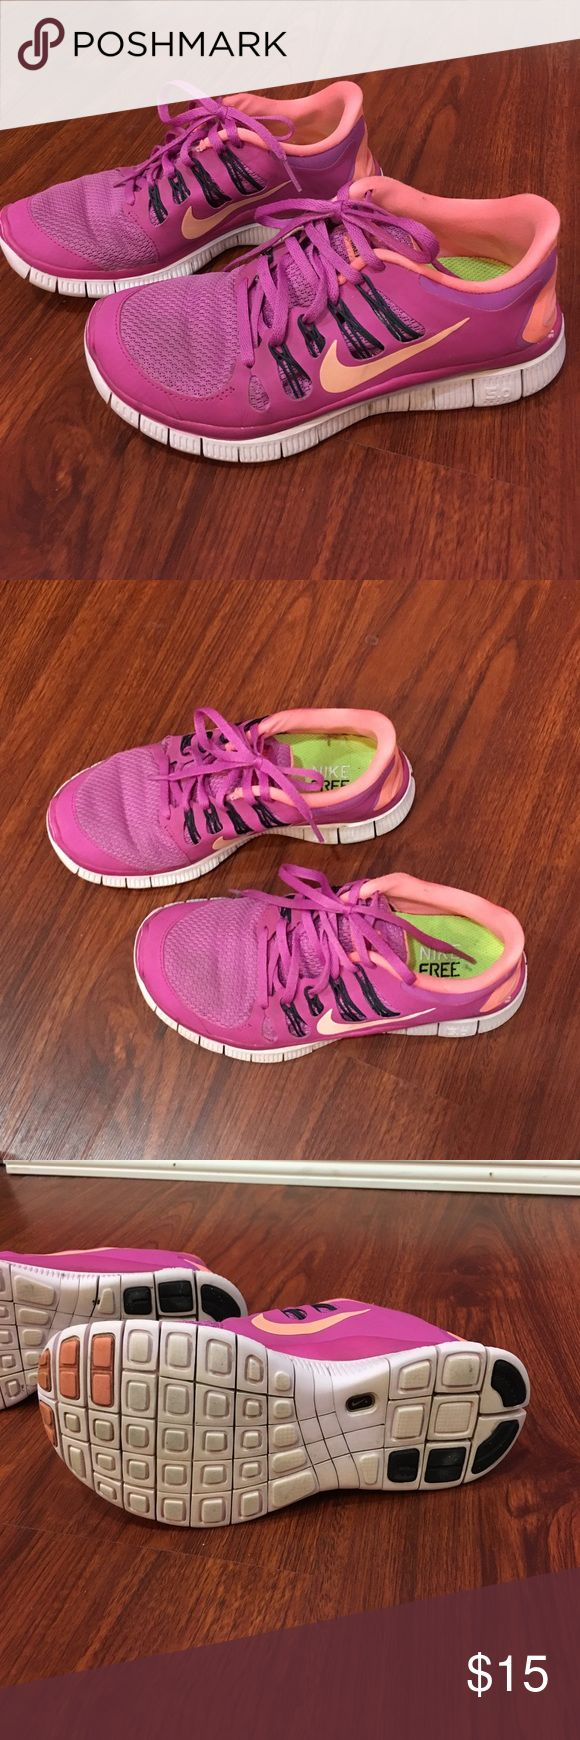 Nike Free 5.0 Pink Running Shoes Super cute and in good condition. Runs small. Size 6 1/2 fits like a Size 6. Nike Shoes Sneakers